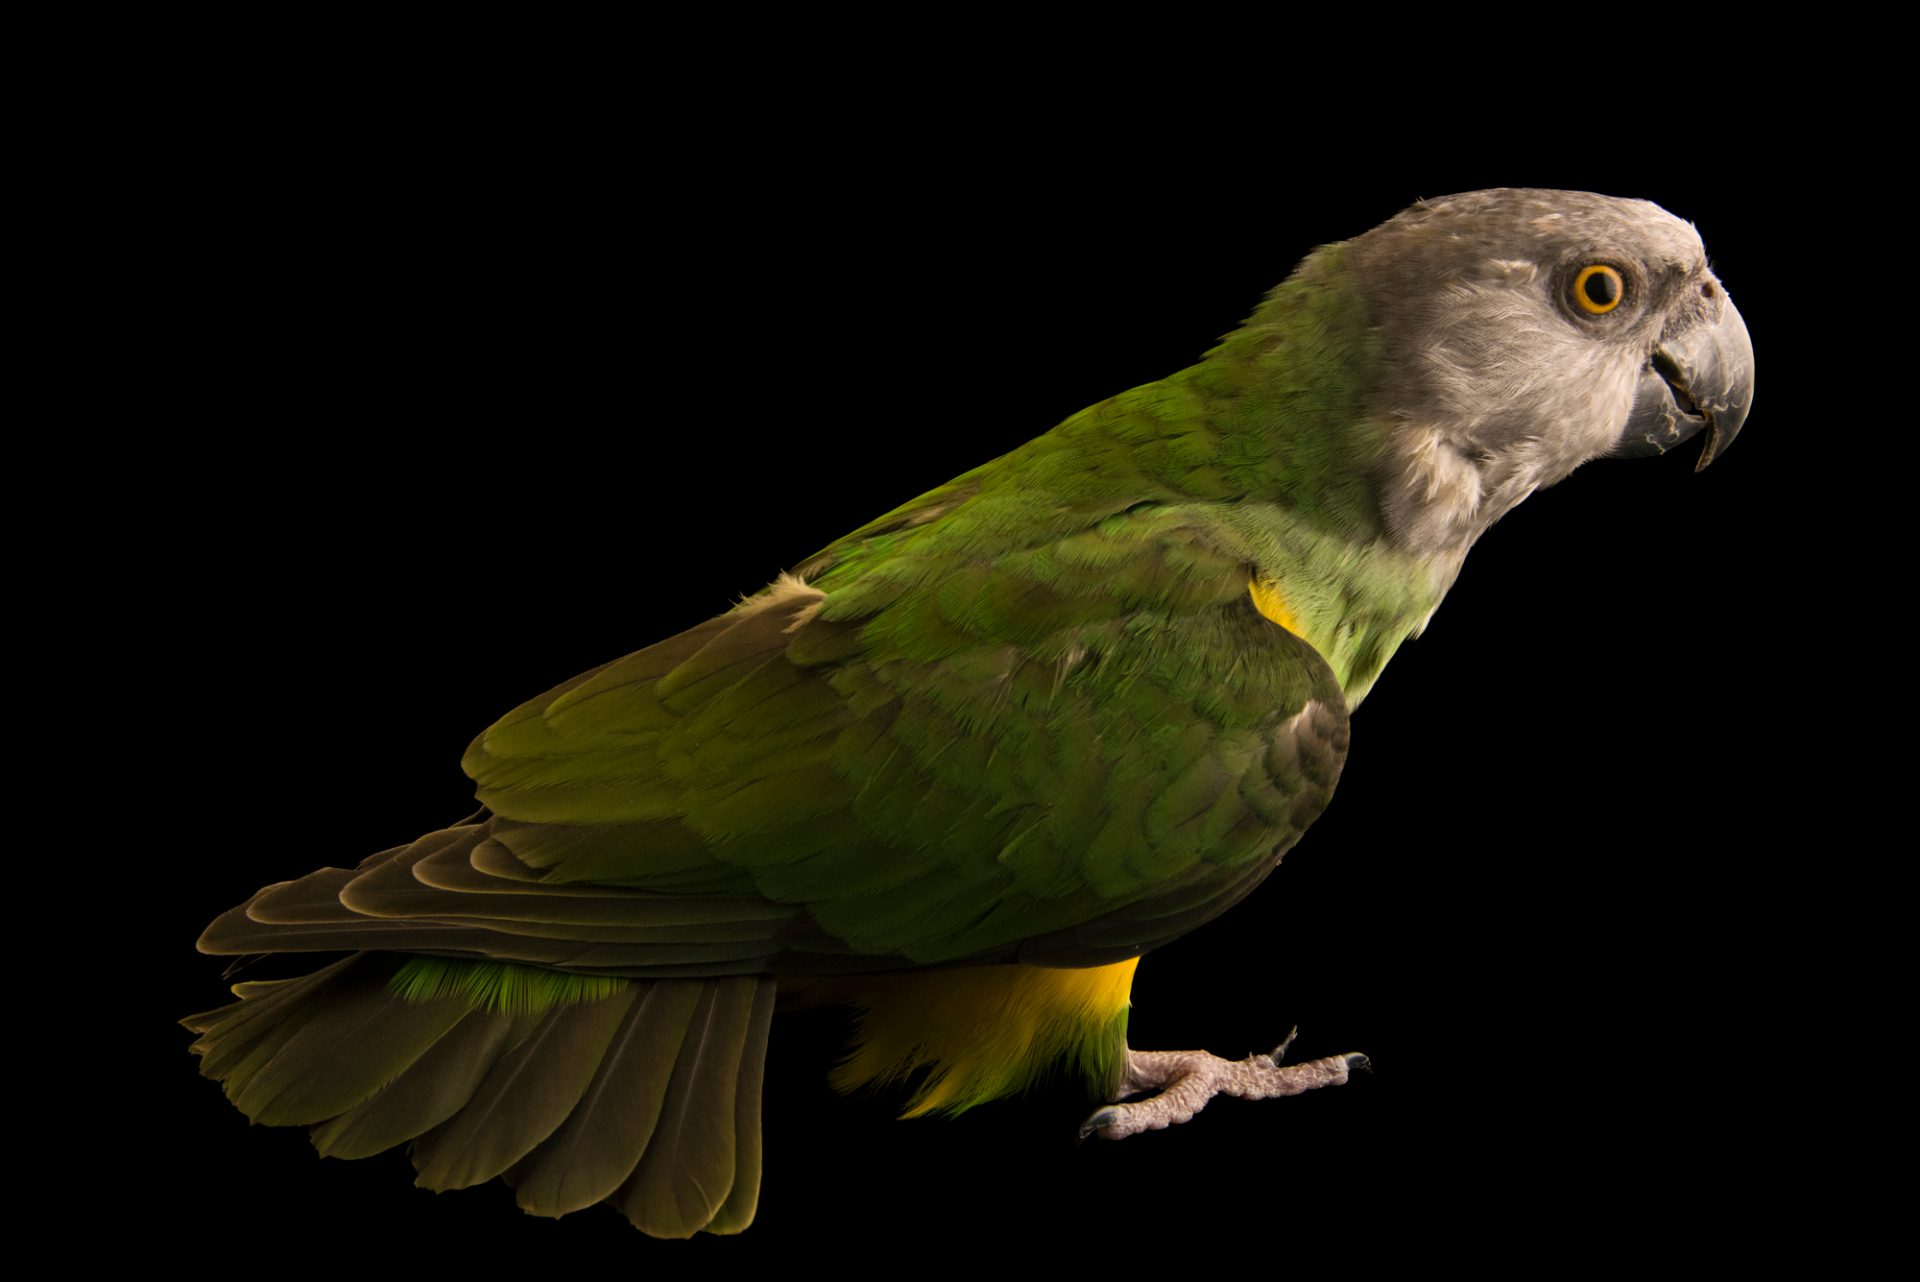 Photo: Senegal parrot (Poicephalus senegalus senegalus) photographed from a private collection in Tenerife.